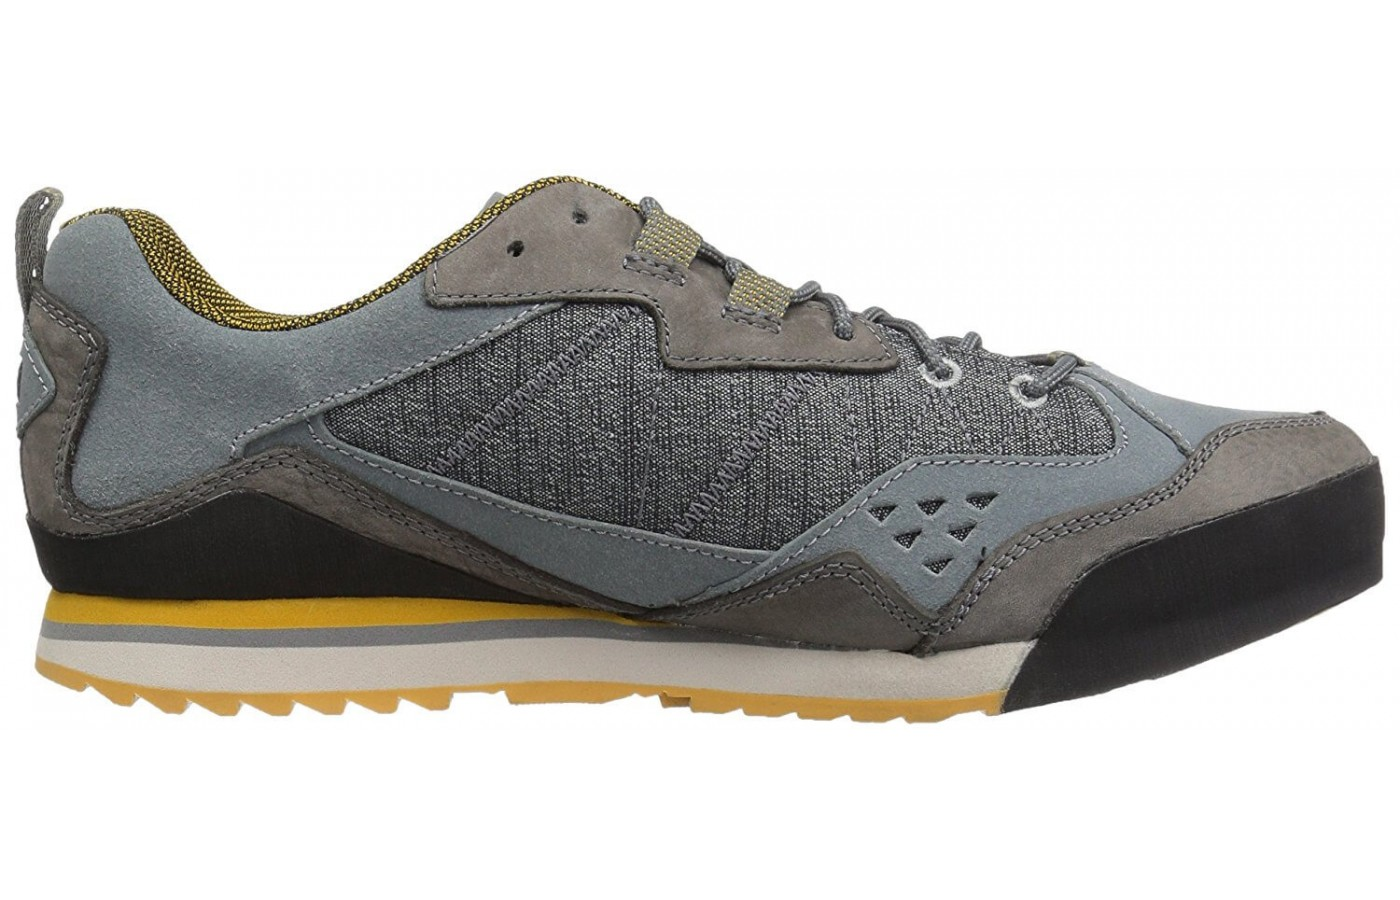 The Merrell Burnt Rock features a mesh and leather upper design